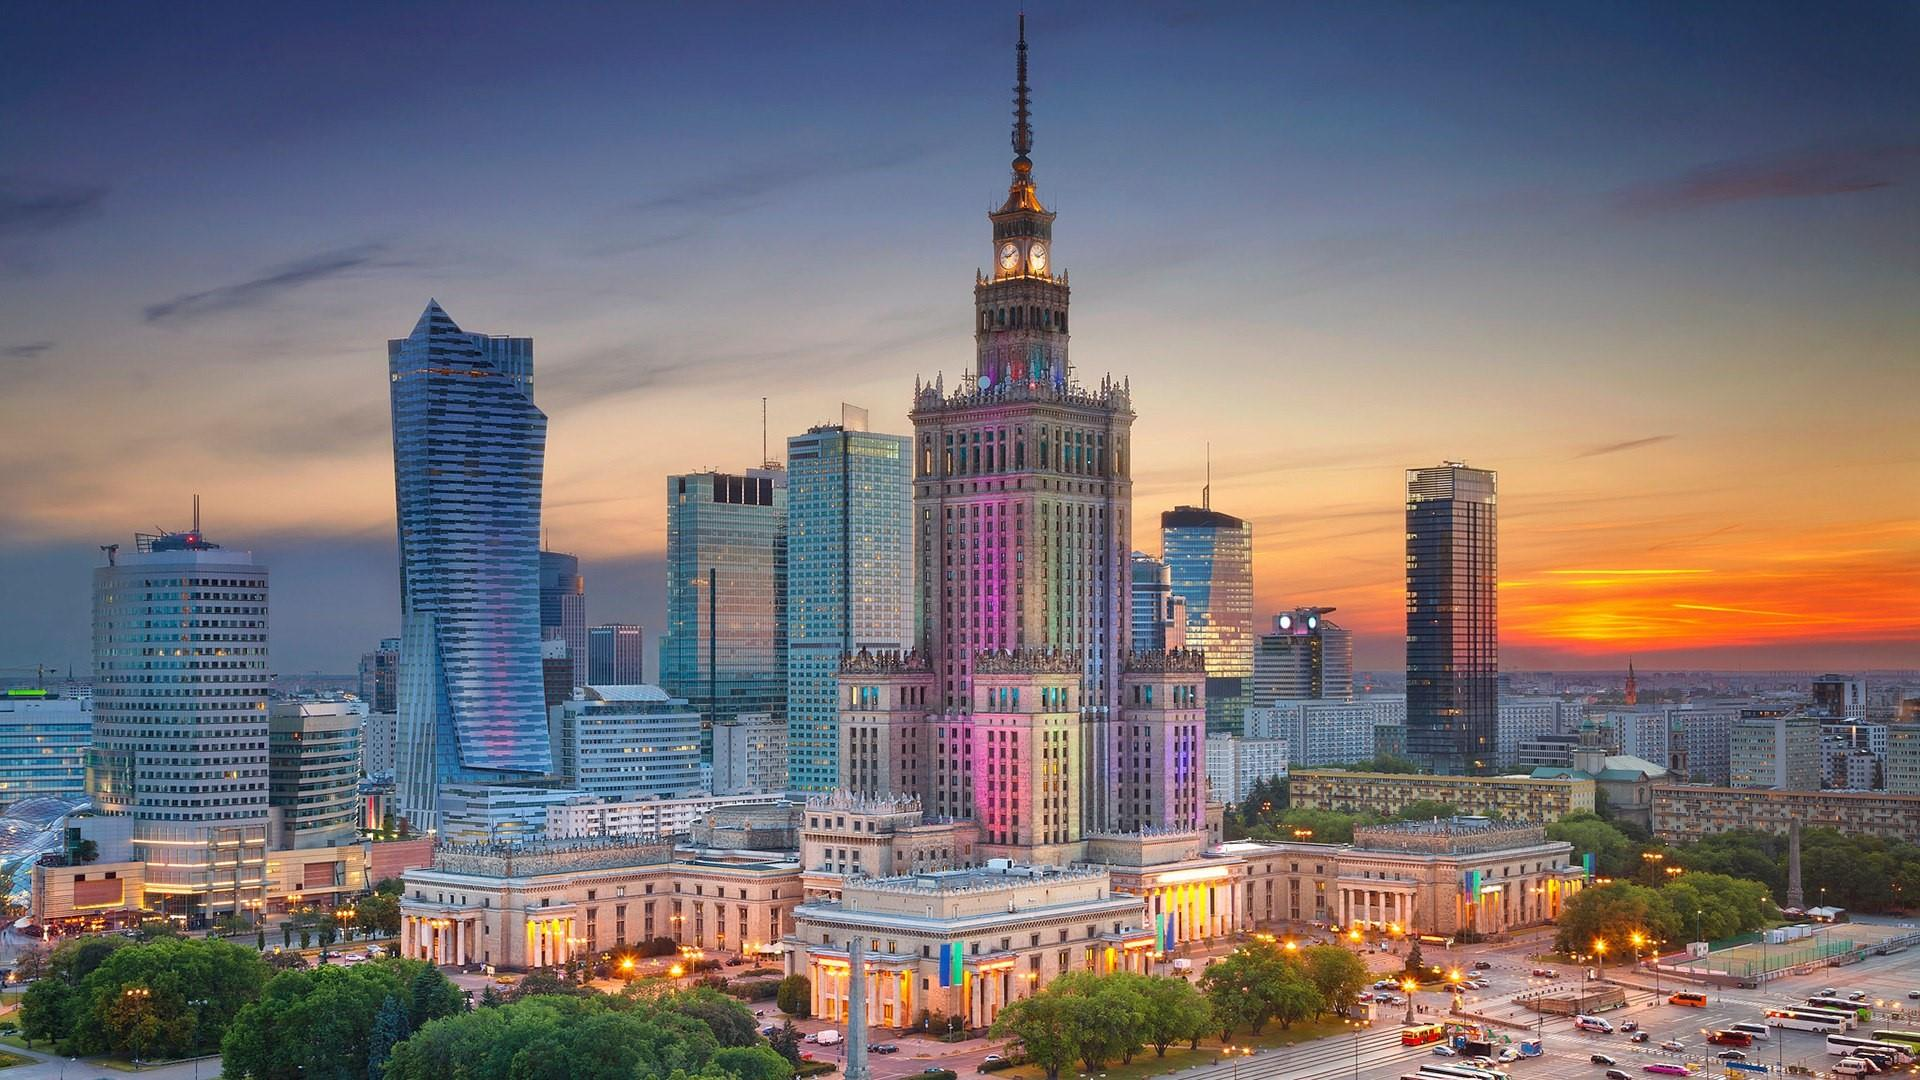 Warsaw Skyline Wallpaper Wallpaper Studio 10 Tens of 1920x1080